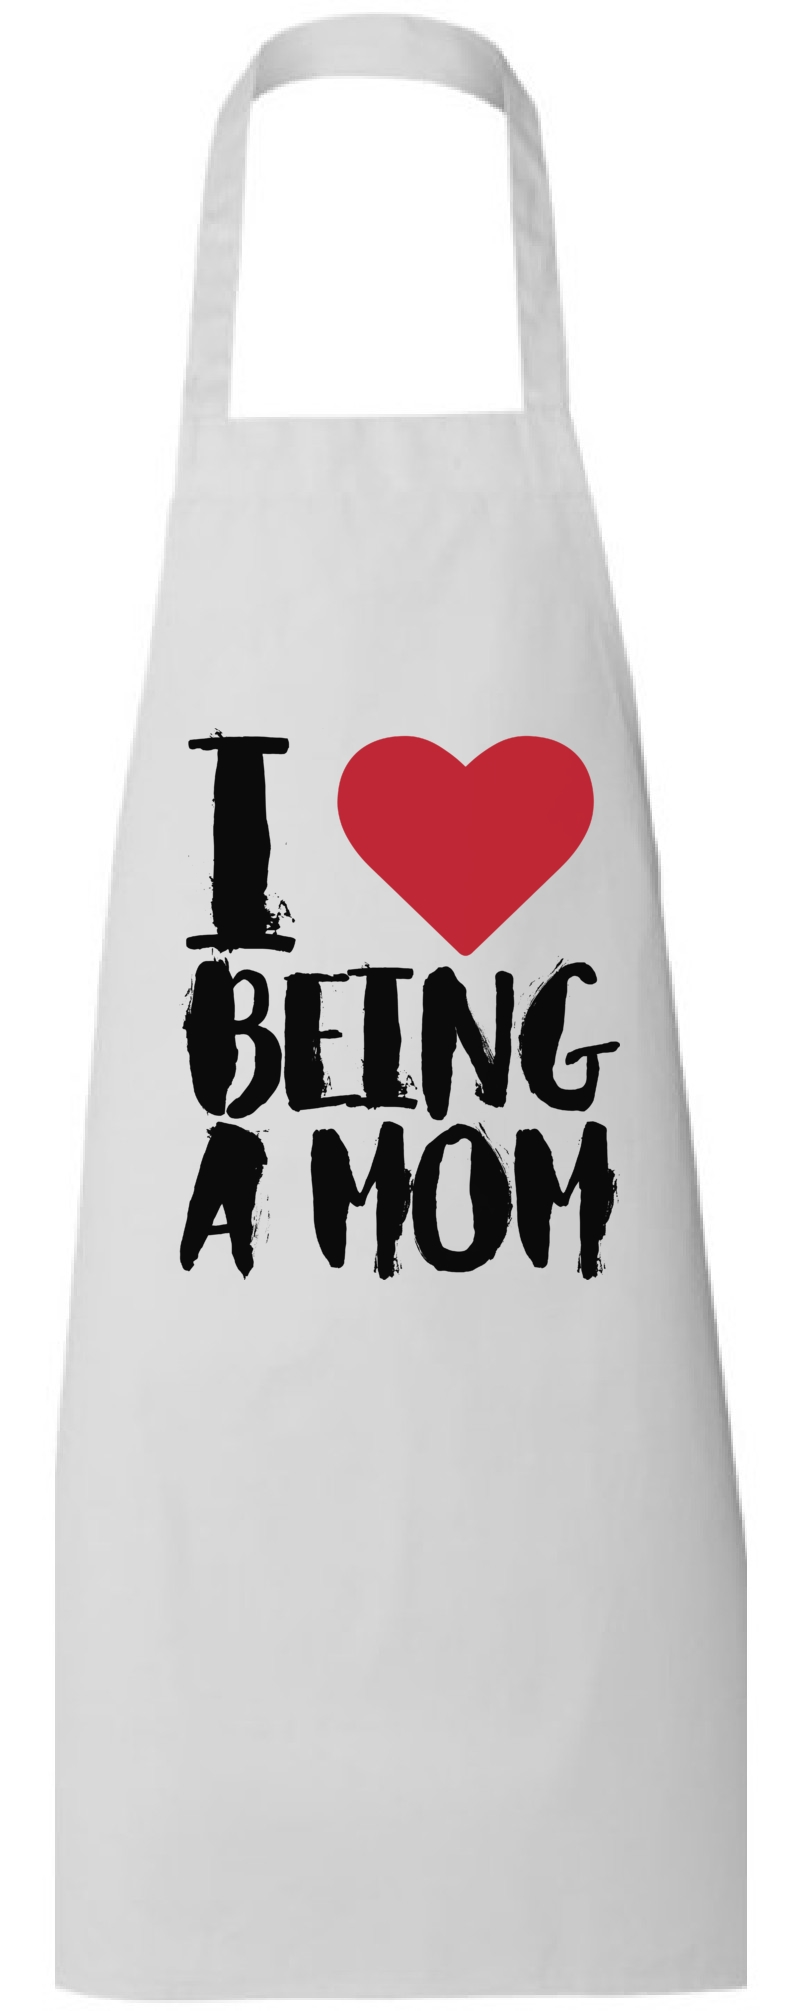 I Love Being Mom Apron Kitchen Aprons for Mom Gifts for Her Best Mom ...